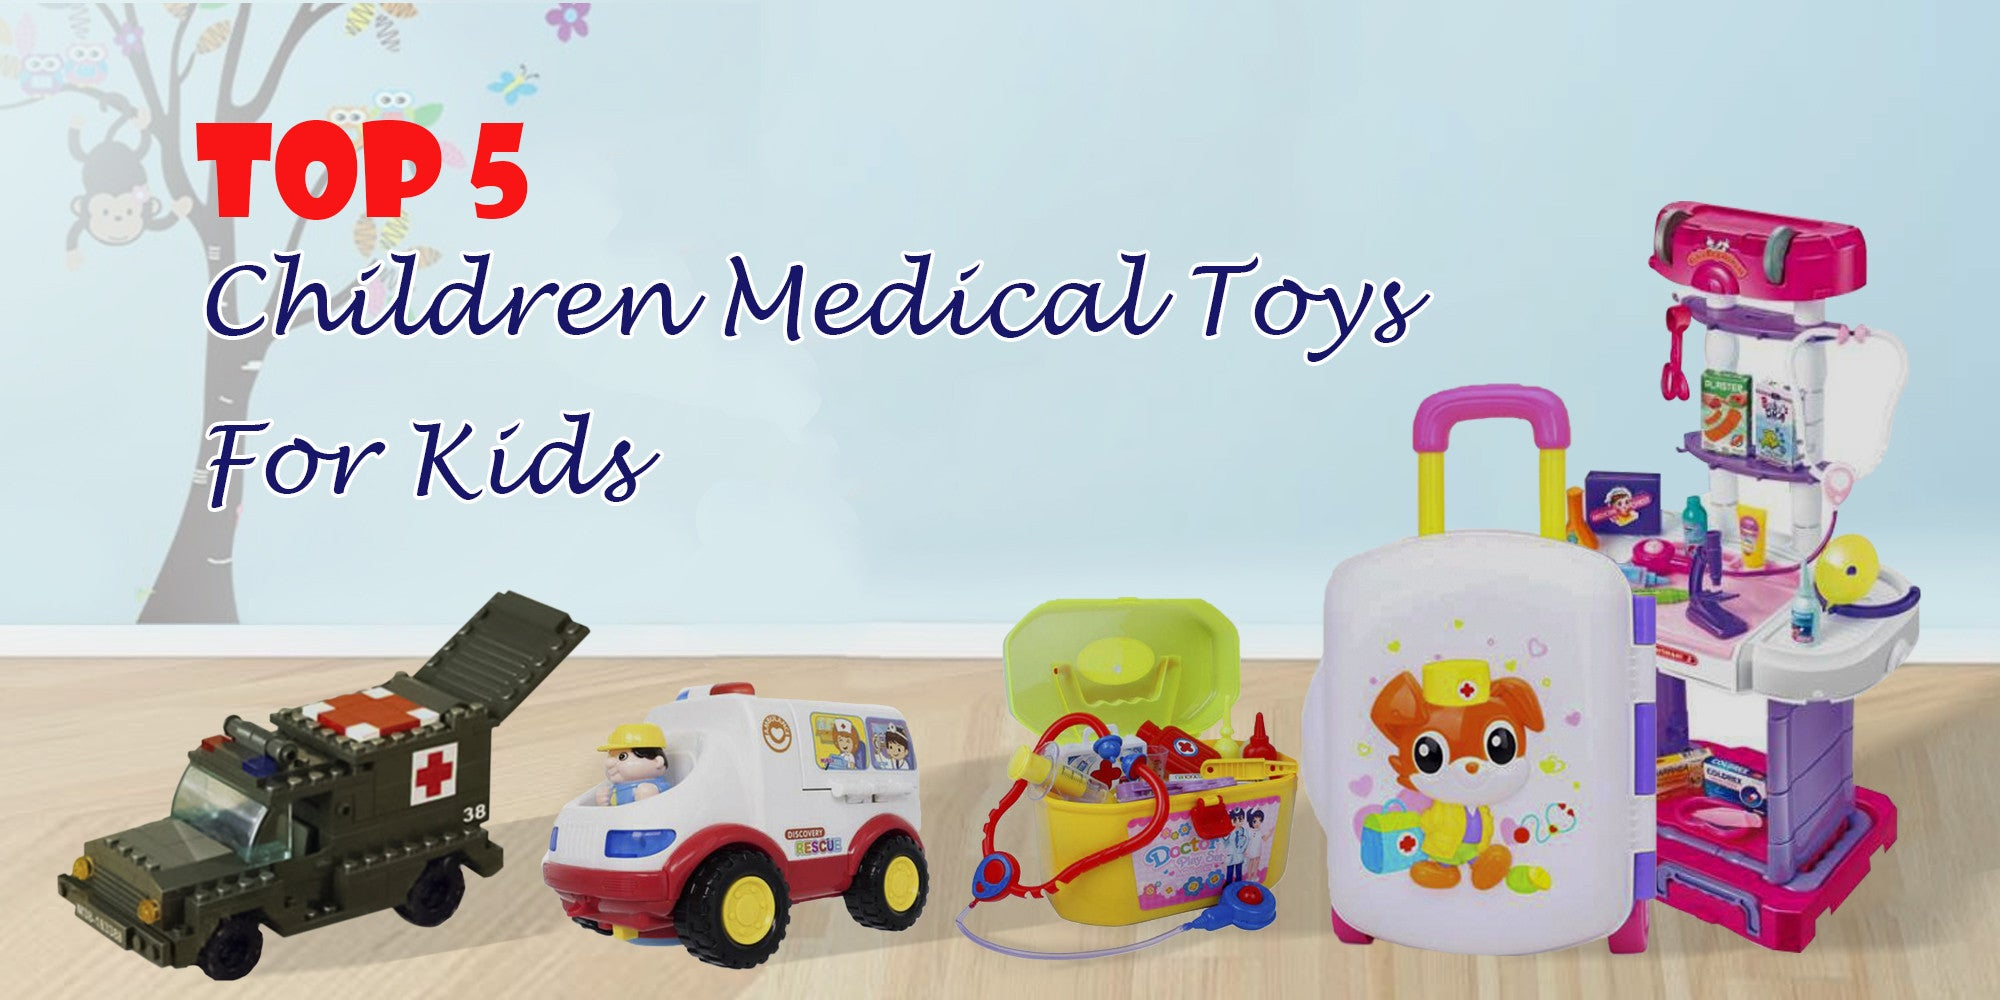 Top 5 Children Medical Toys For Kids